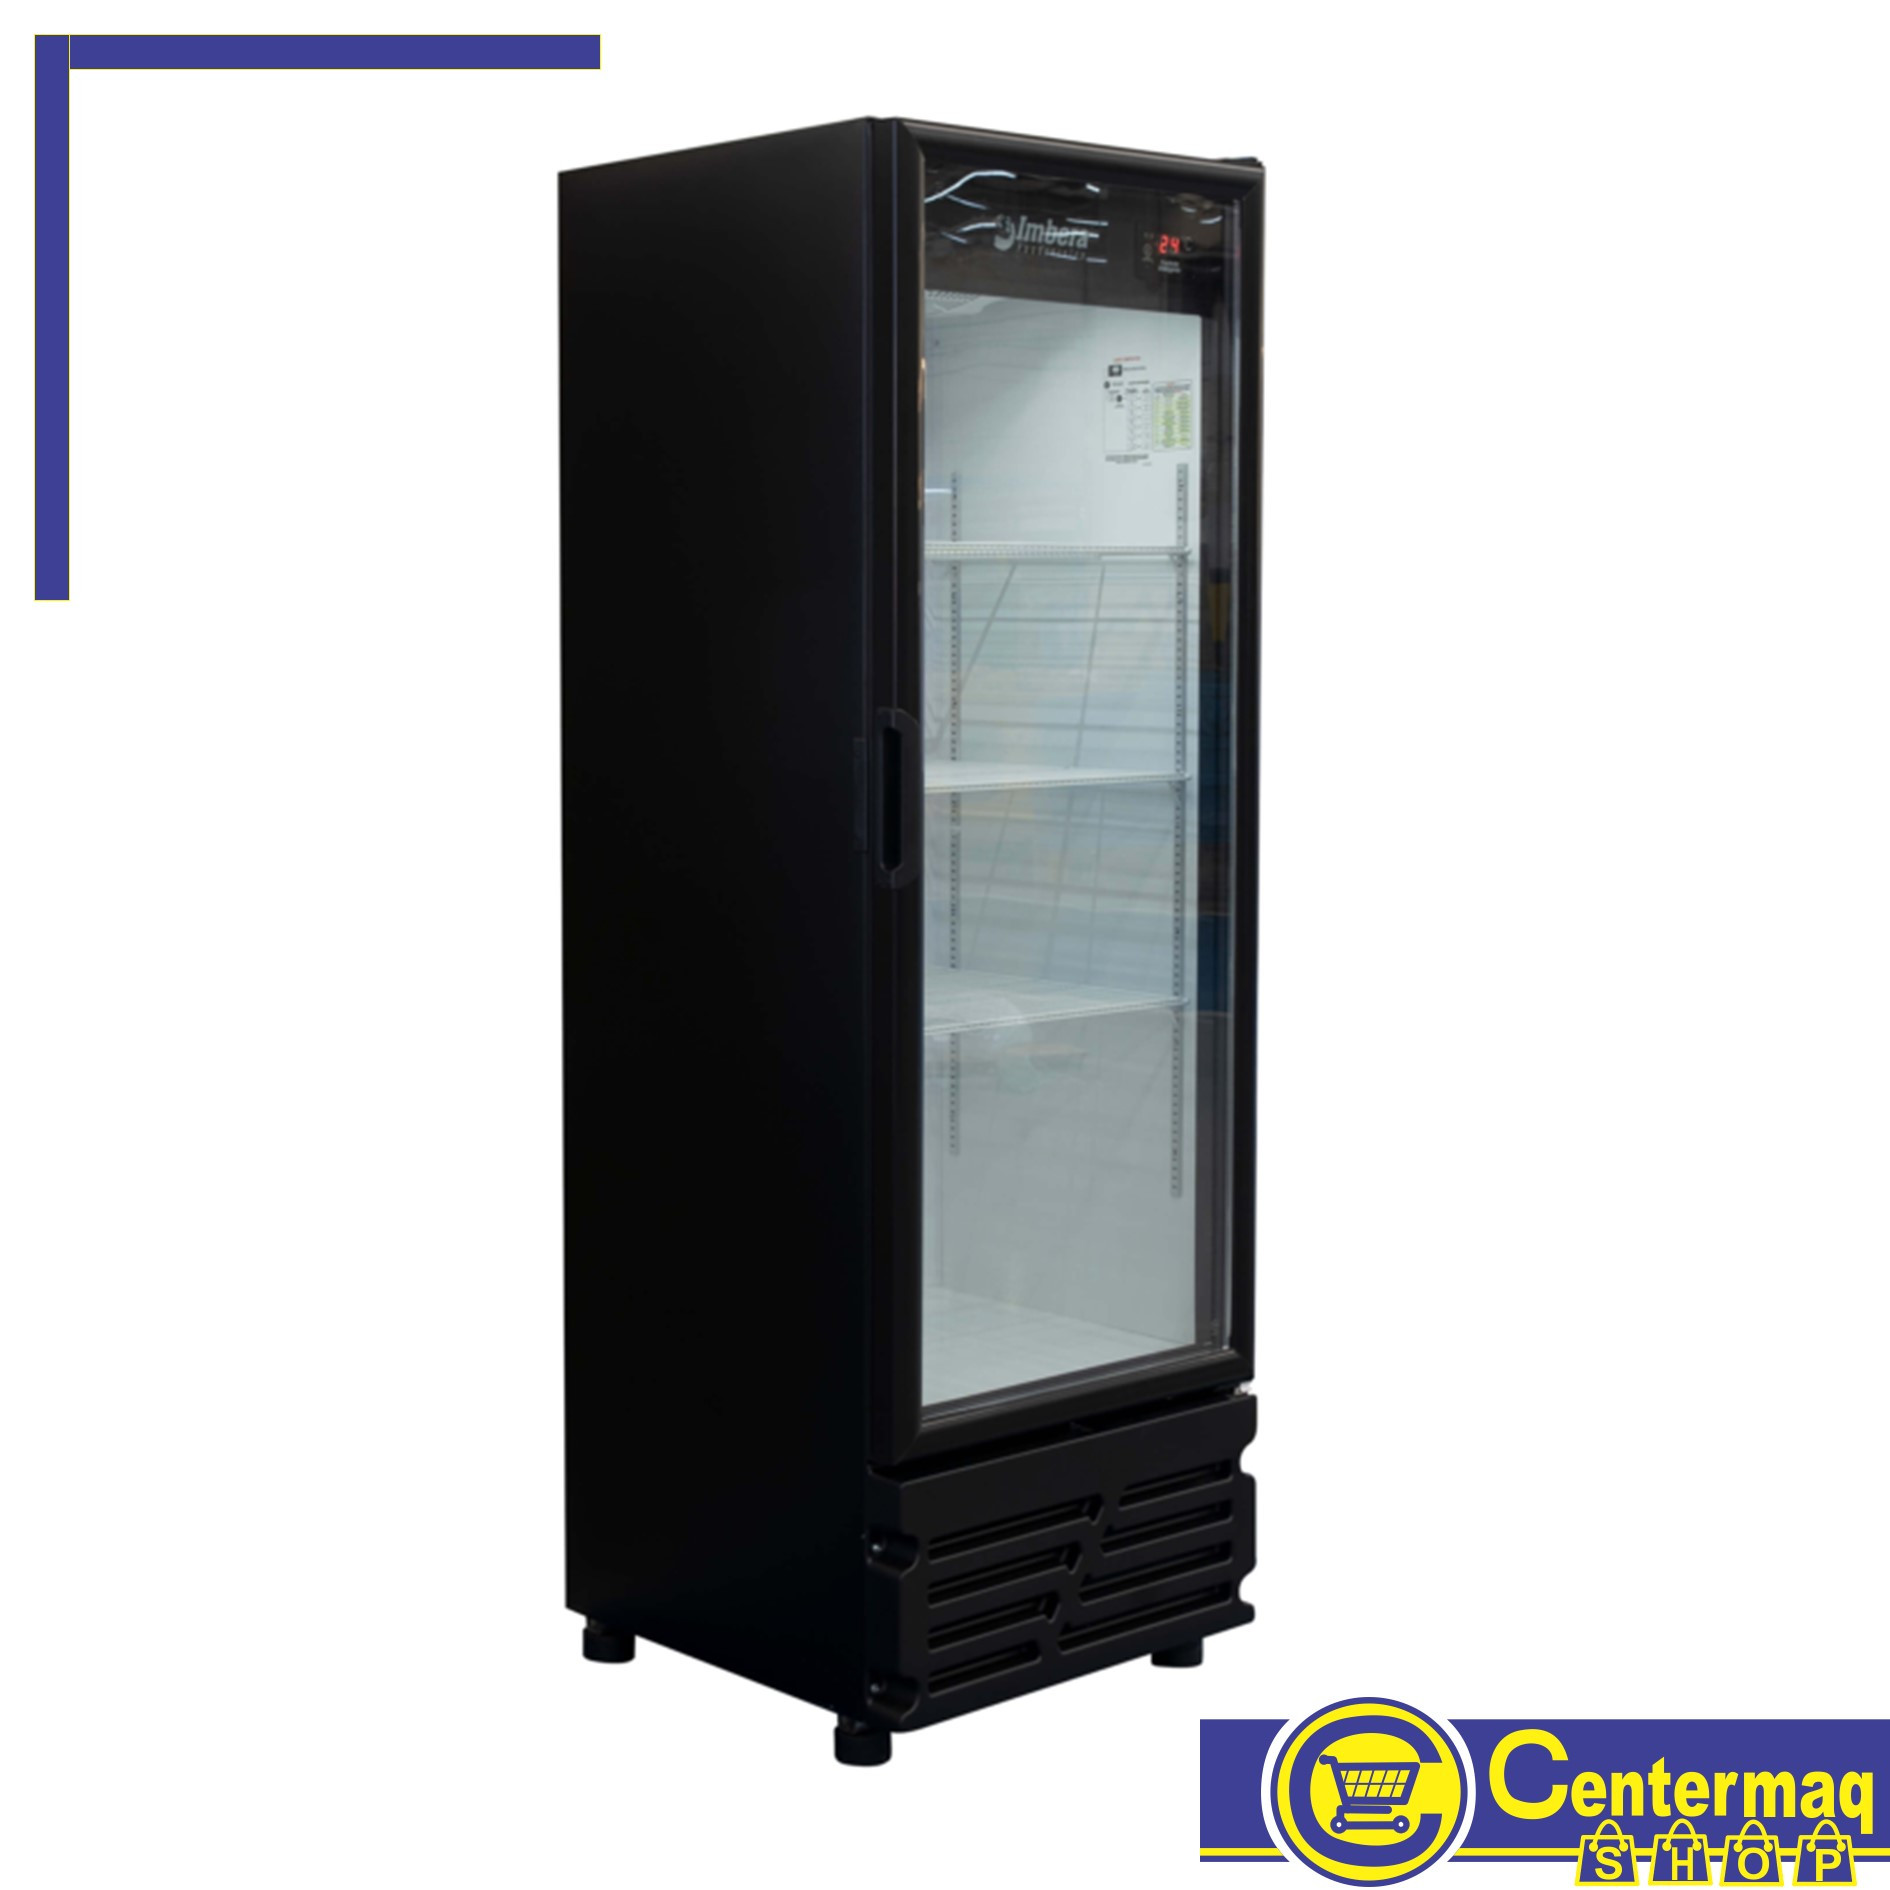 REFRIGERADOR SOFT DRINKS 454 LTS